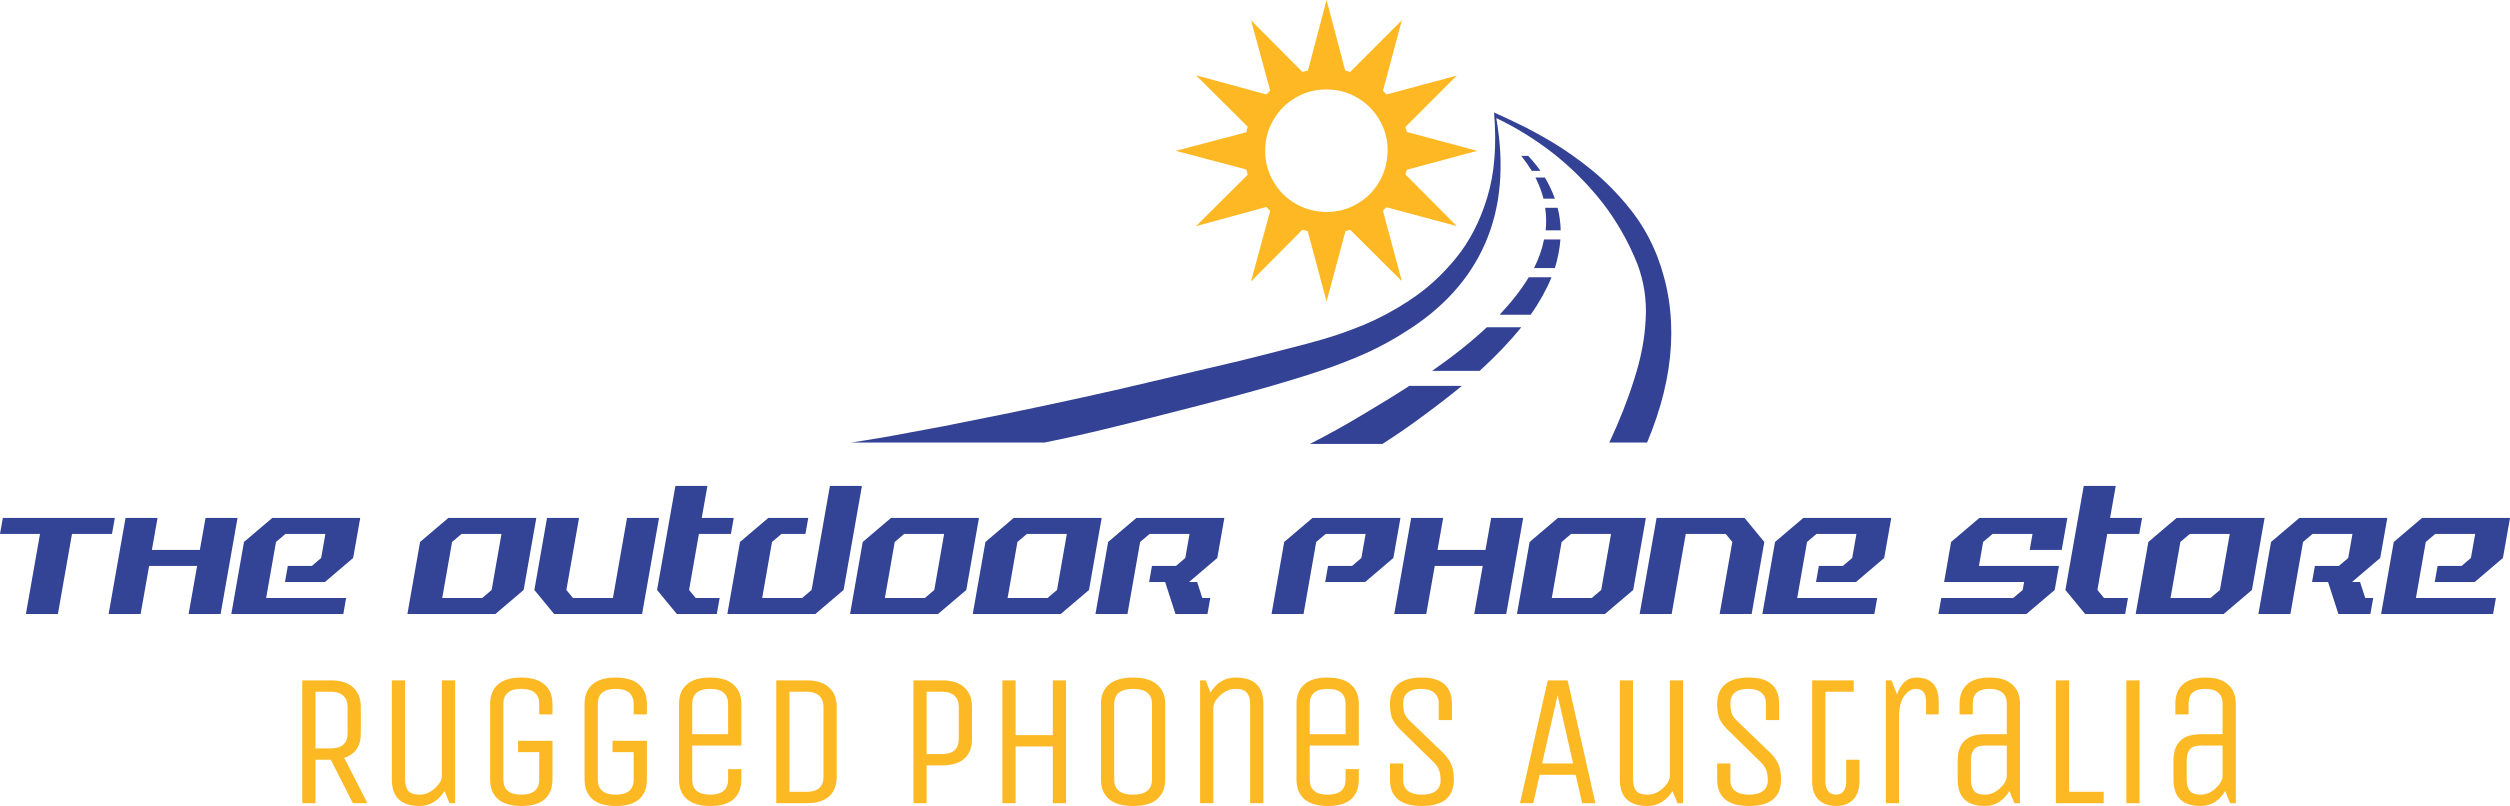 The Outdoor Phone Store: Rugged Phones Australia